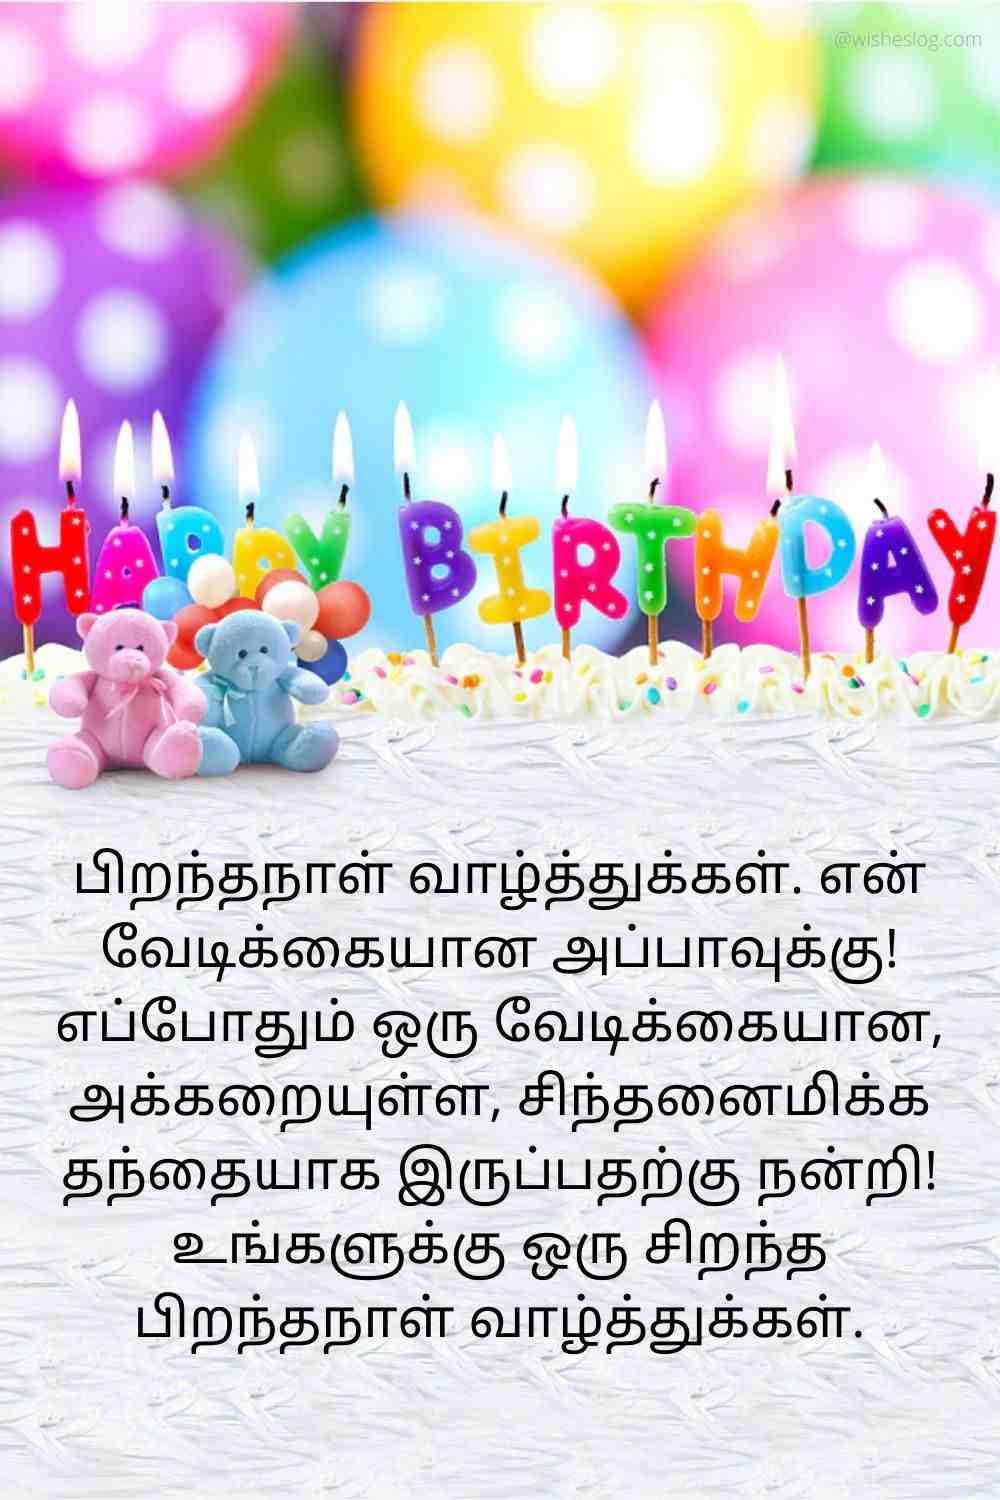 birthday wishes quotes in tamil for dad